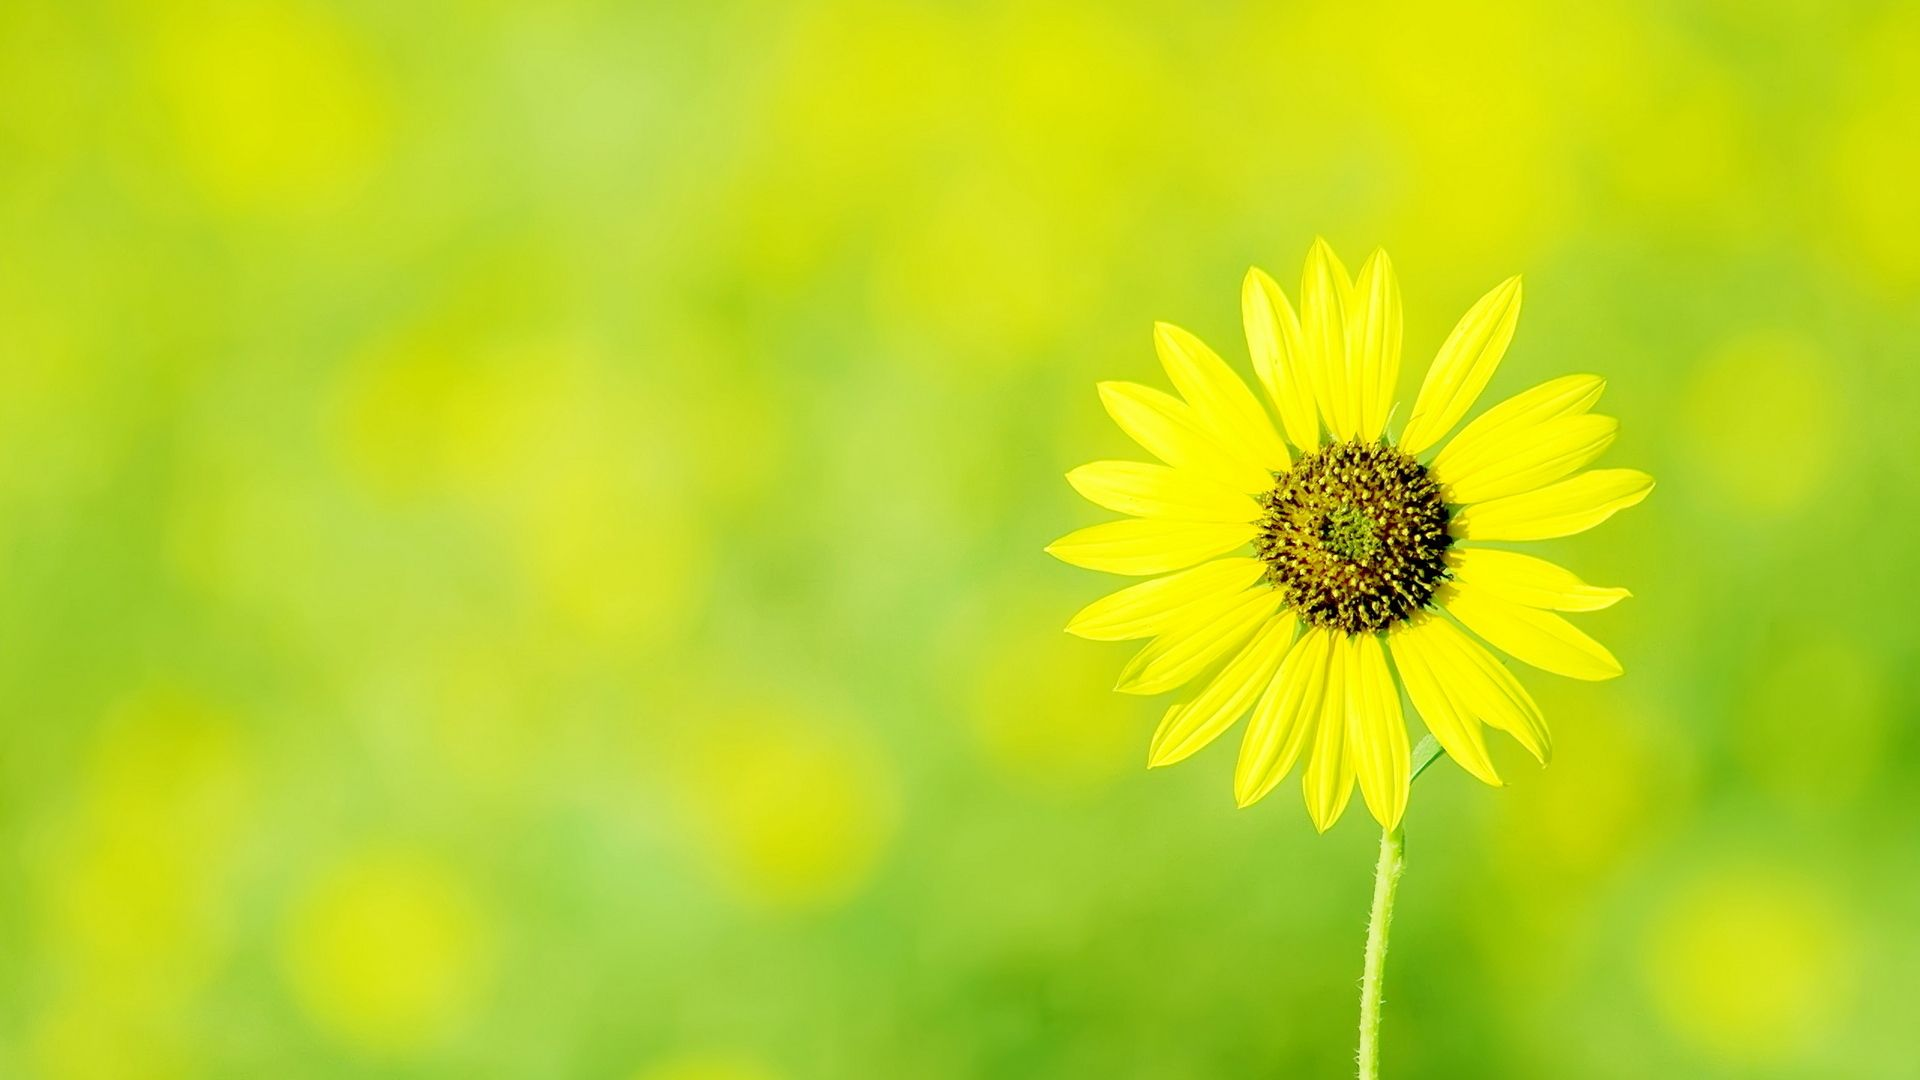 Hd wallpaper yellow flowers - Find This Pin And More On High Definition Wallpapers Hd Wallpapers 1080p